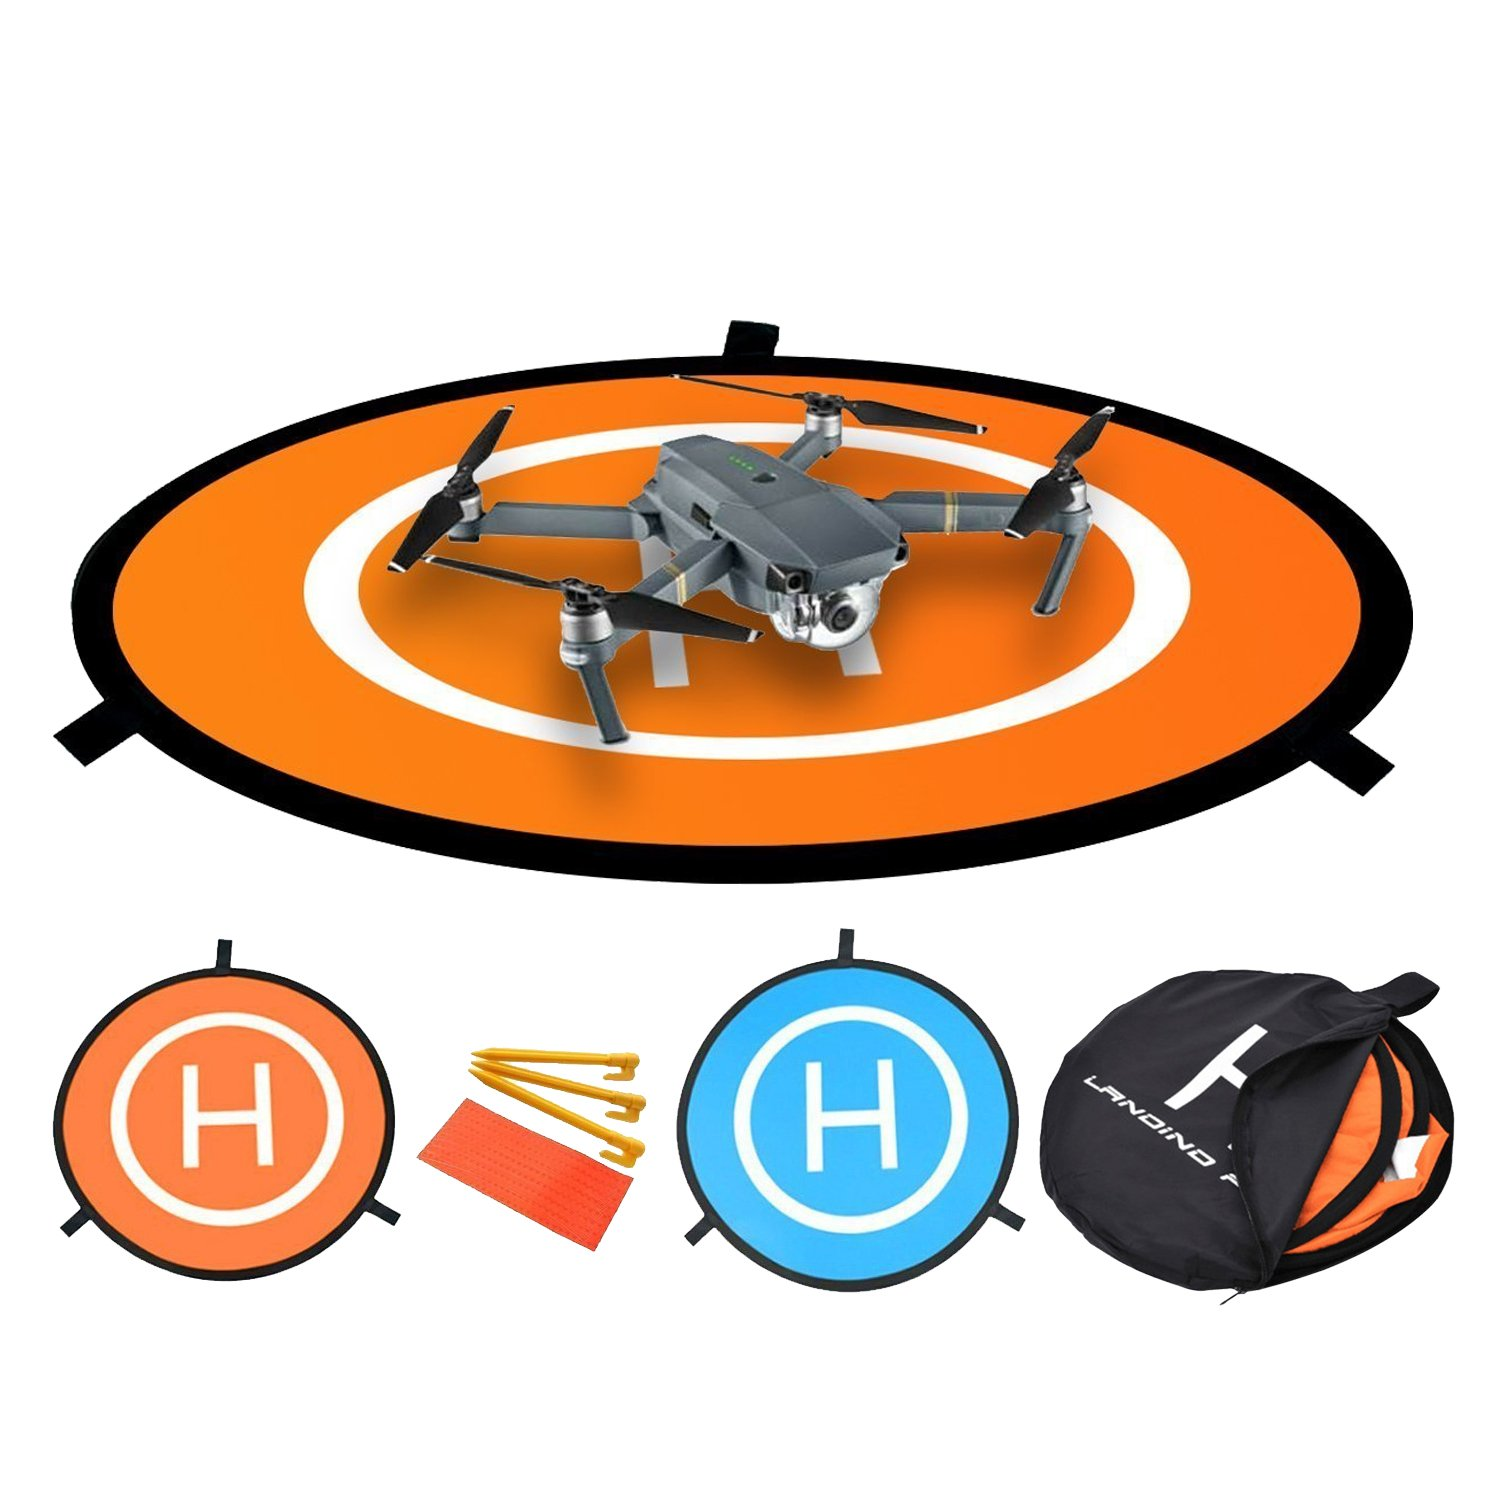 FSLabs 30 inch Drone Landing Pad